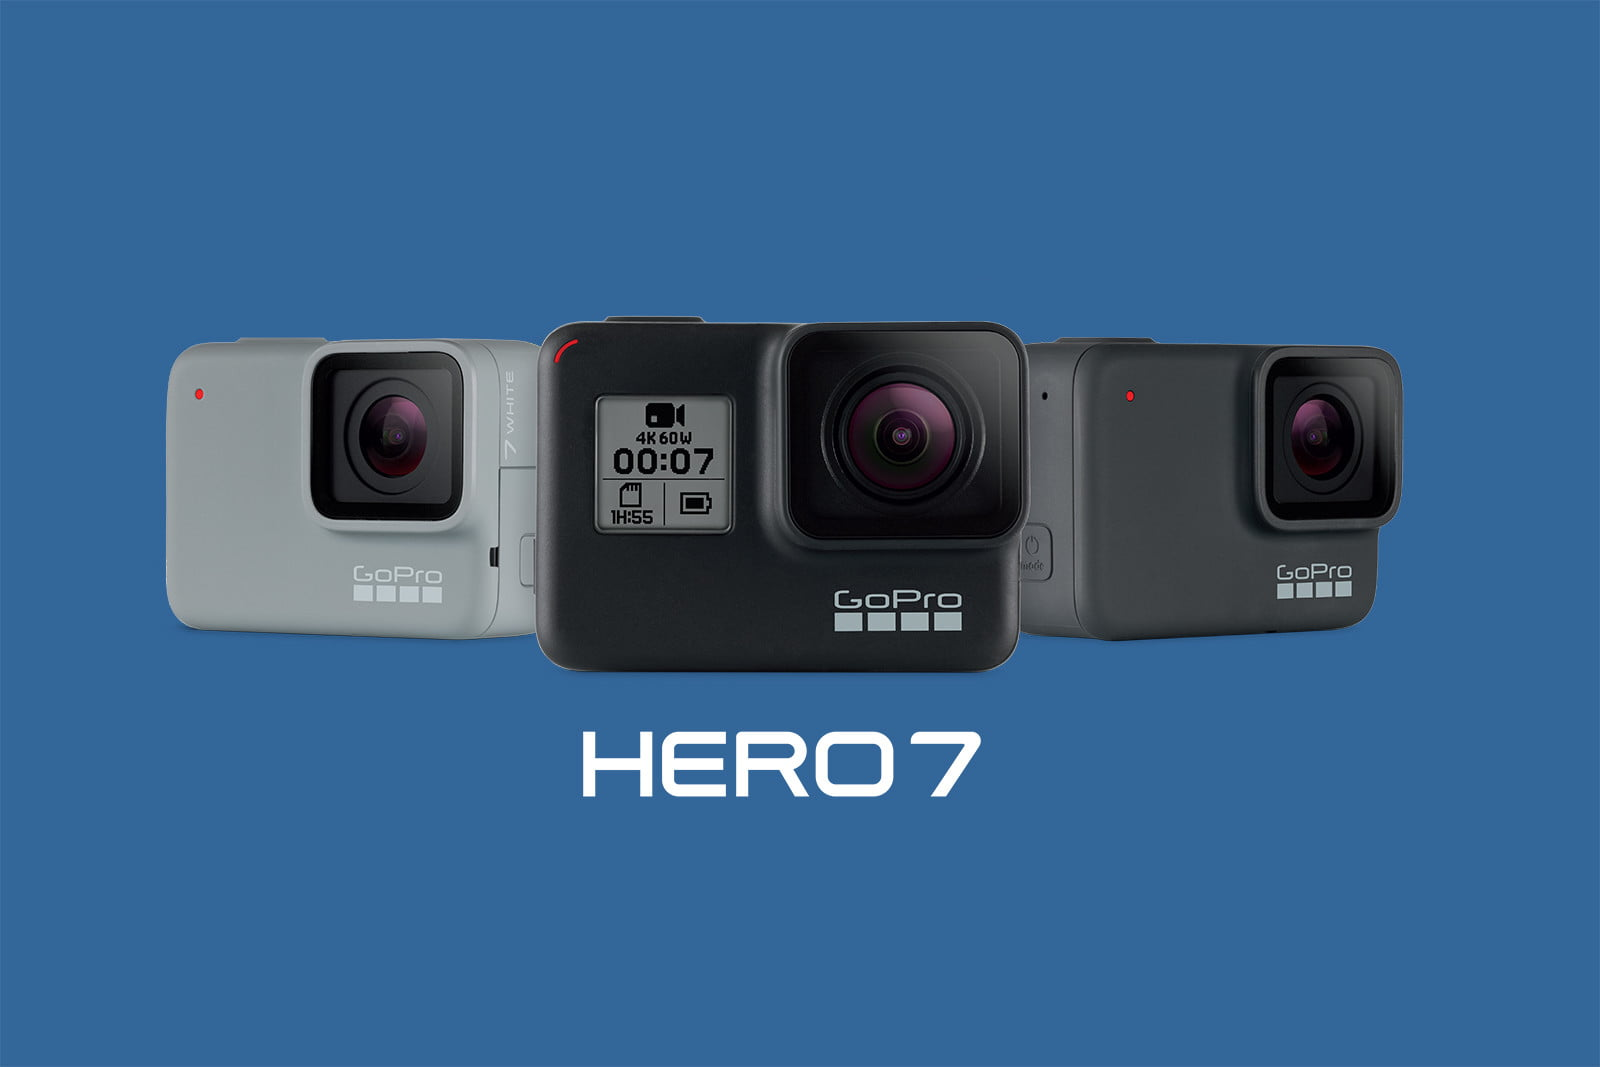 Get the GoPro Hero7 for under $200 from Amazon and Walmart